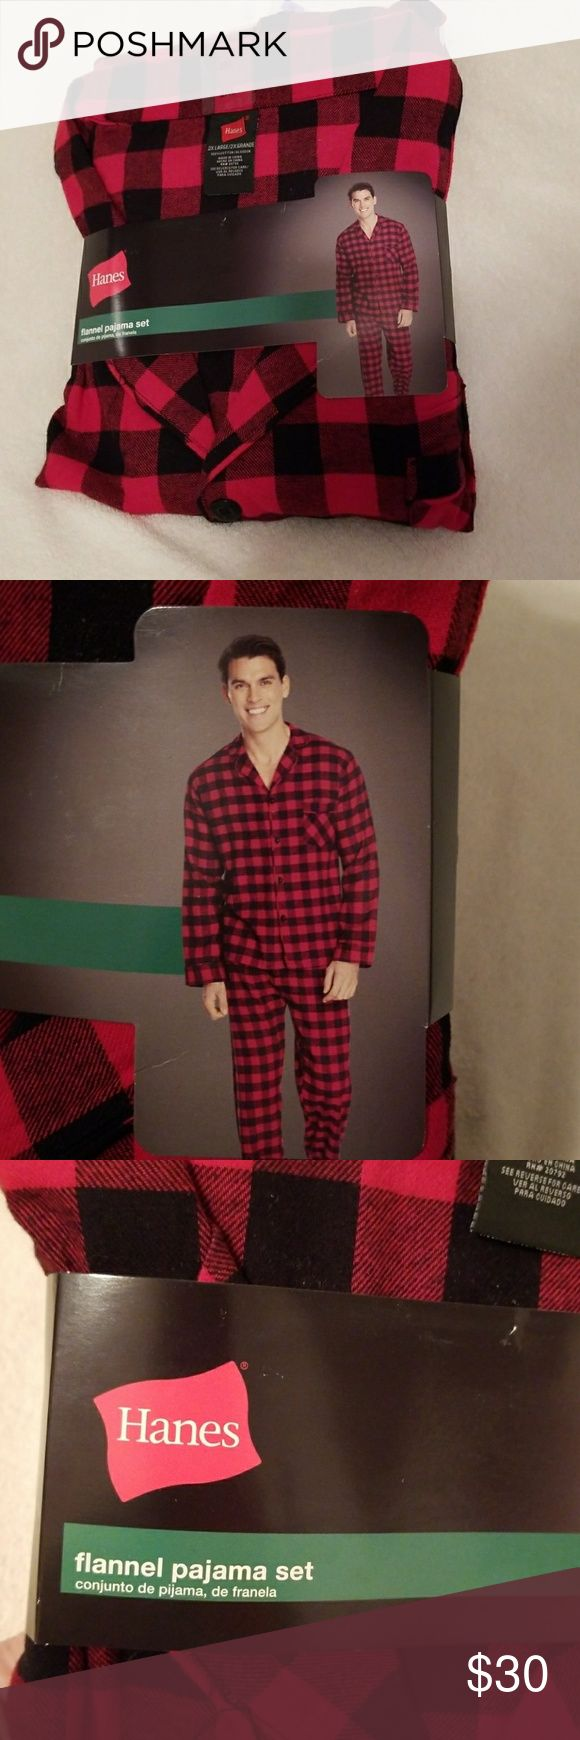 😴 Men's Flannel Pajamas Set 2XL (Top & Bottom) NWT  Men's black/red checkered flannel pajamas set   2XL (Top & Bottom)   Fuller cut for easy movement. Comfortable, covered elastic waist band with adjustable drawstring.   Measurements:   Top: 50-52 chest Bottom: 44-46 waist Hanes Other